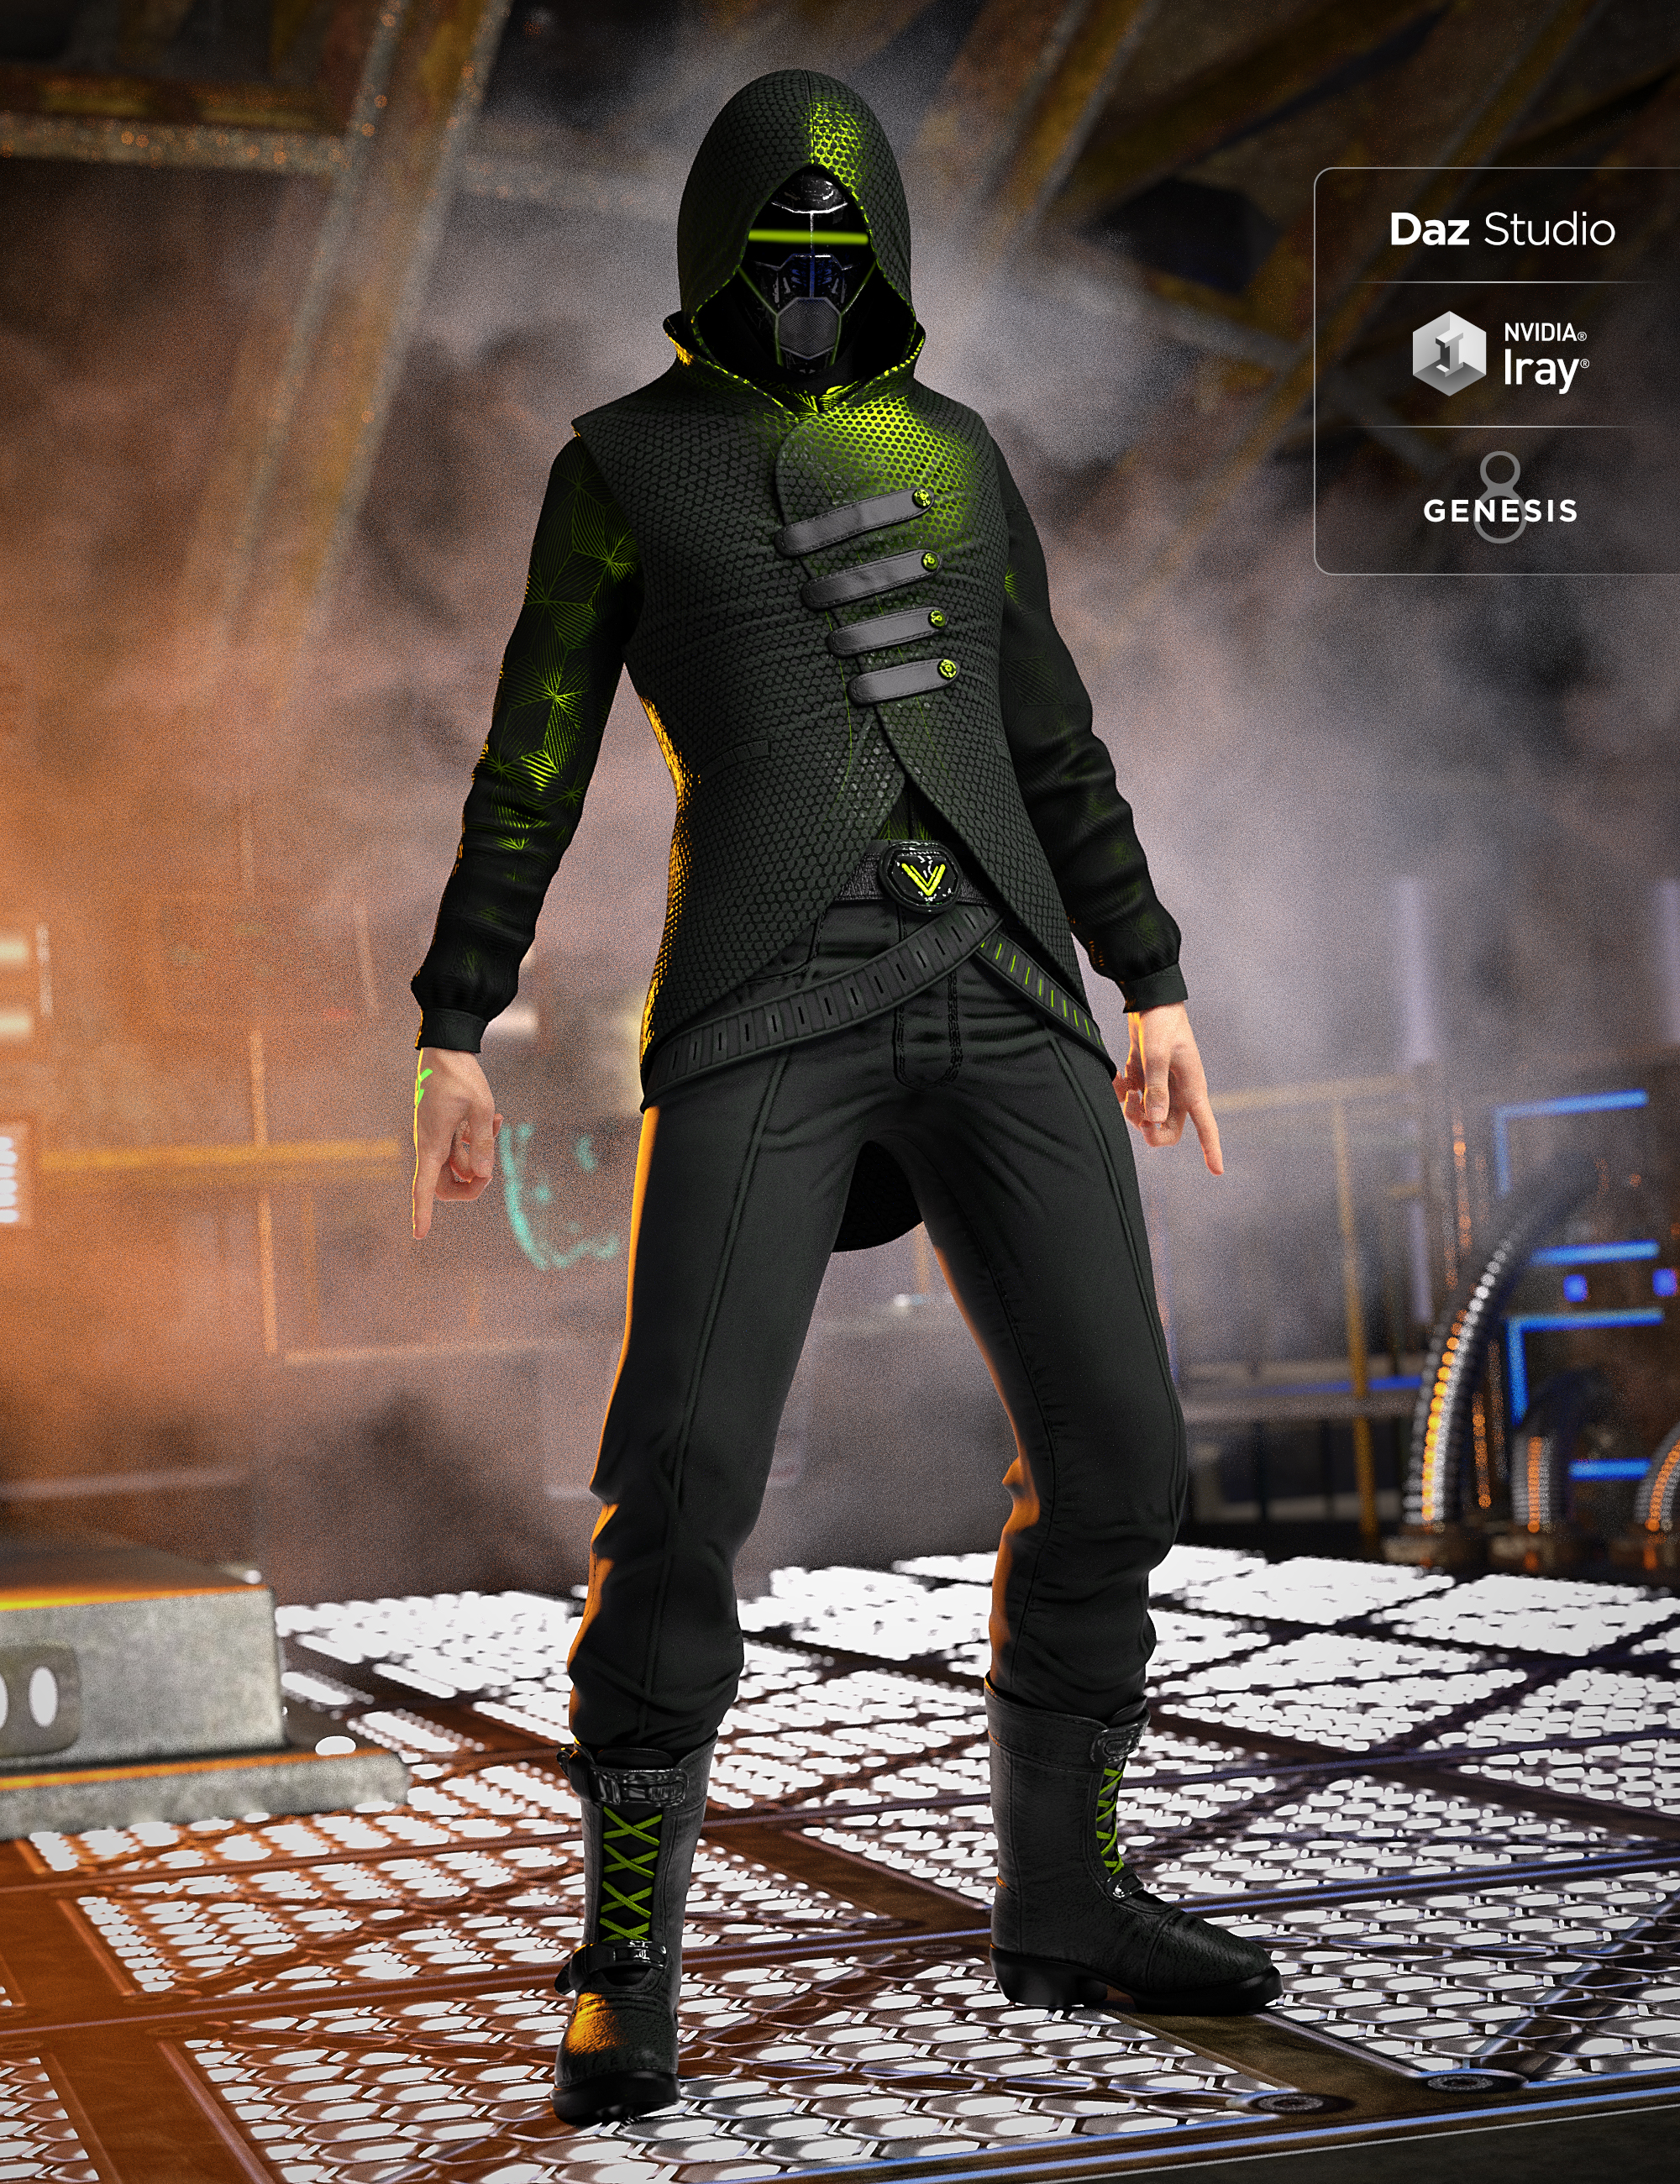 Sci-Fi Assassin Outfit for Genesis 8 Male(s) by: DemianYura, 3D Models by Daz 3D